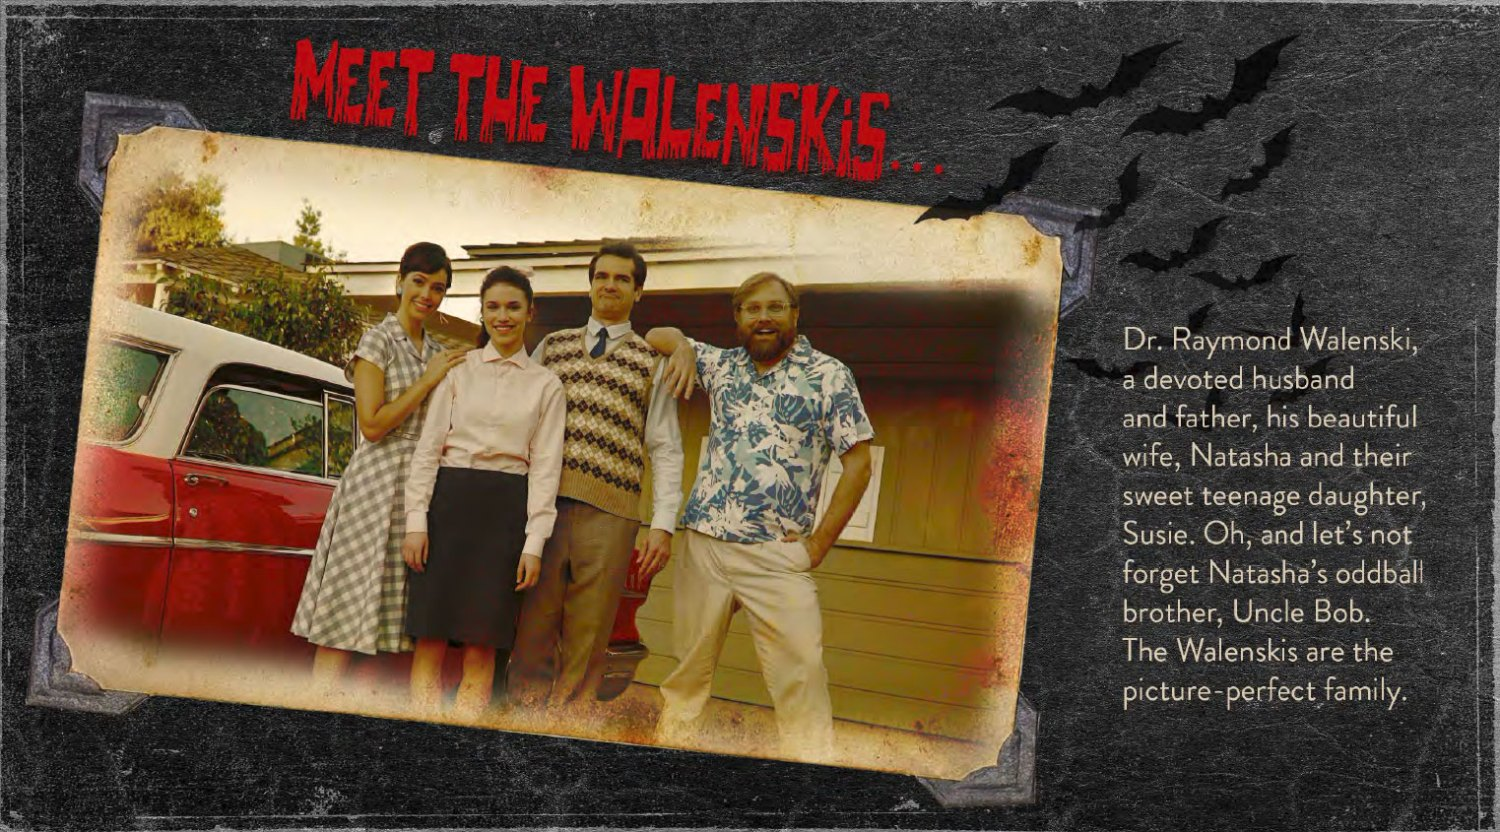 Meet the Walenskis... Dr. Raymond Walenski, a devoted husband and father, his beautiful wife, Natasha and their sweet teenage daughter, Susie. Oh, and let's not forget Natasha's oddball brother, Uncle Bob. The Walenskis are the picture-perfect family.